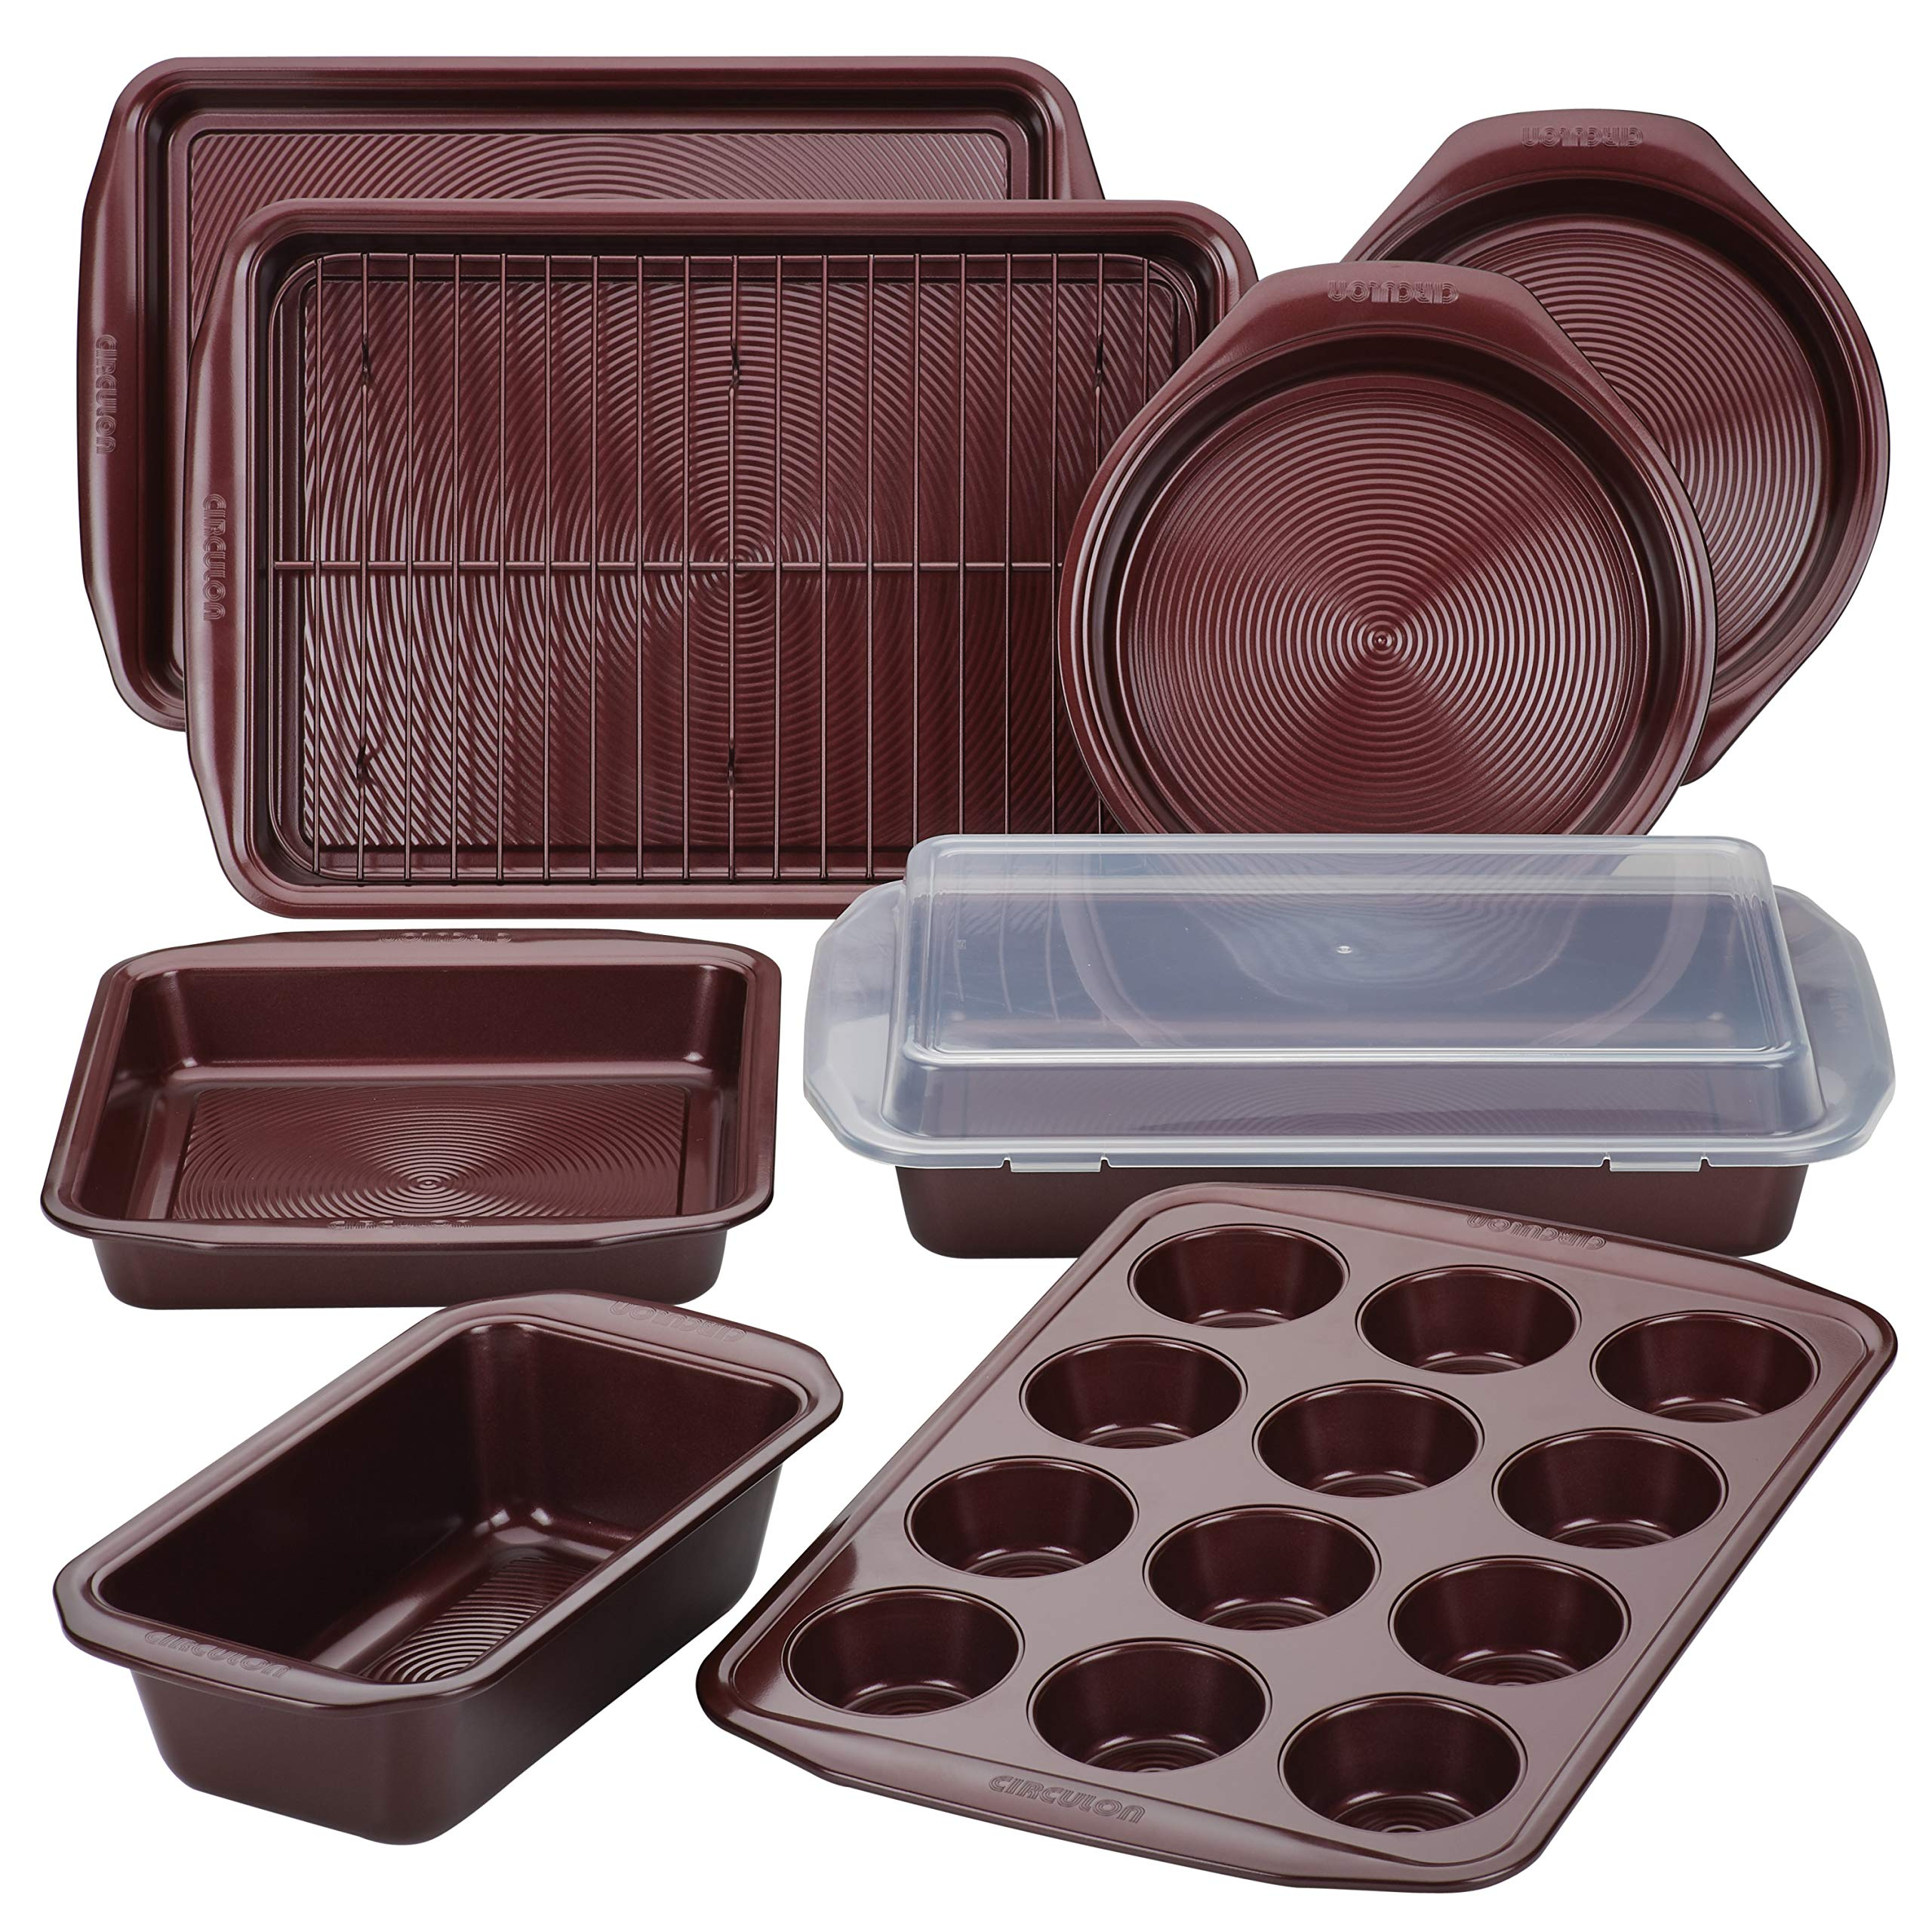 Circulon 47740 10-Piece Steel Bakeware Set, Merlot